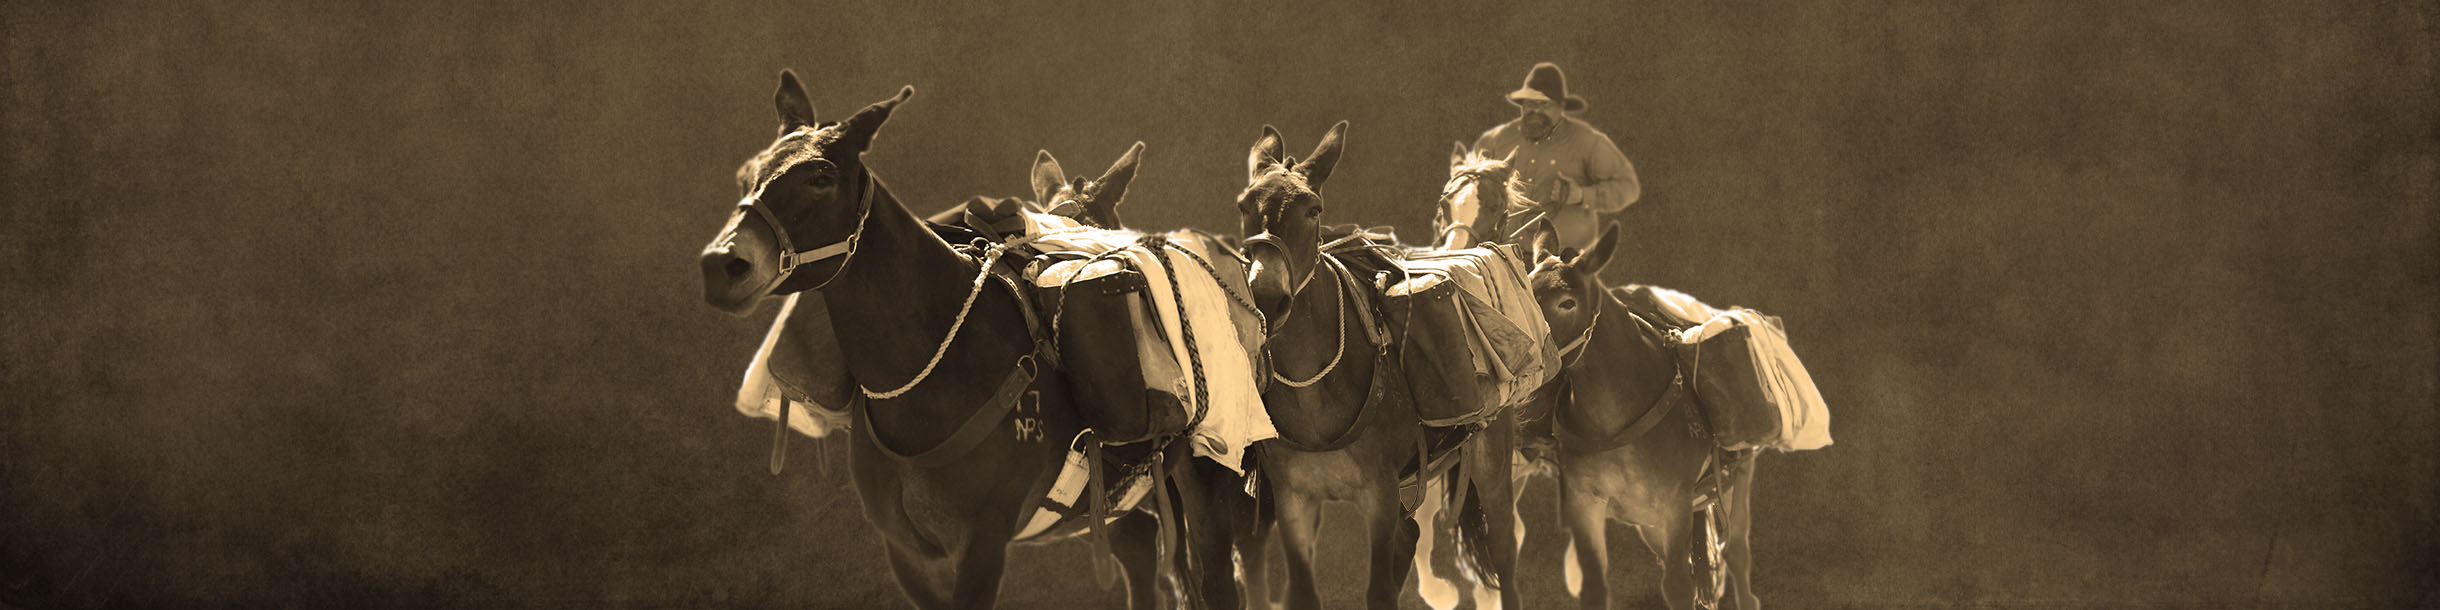 Mule Days Celebration, Bishop California - homepage banner